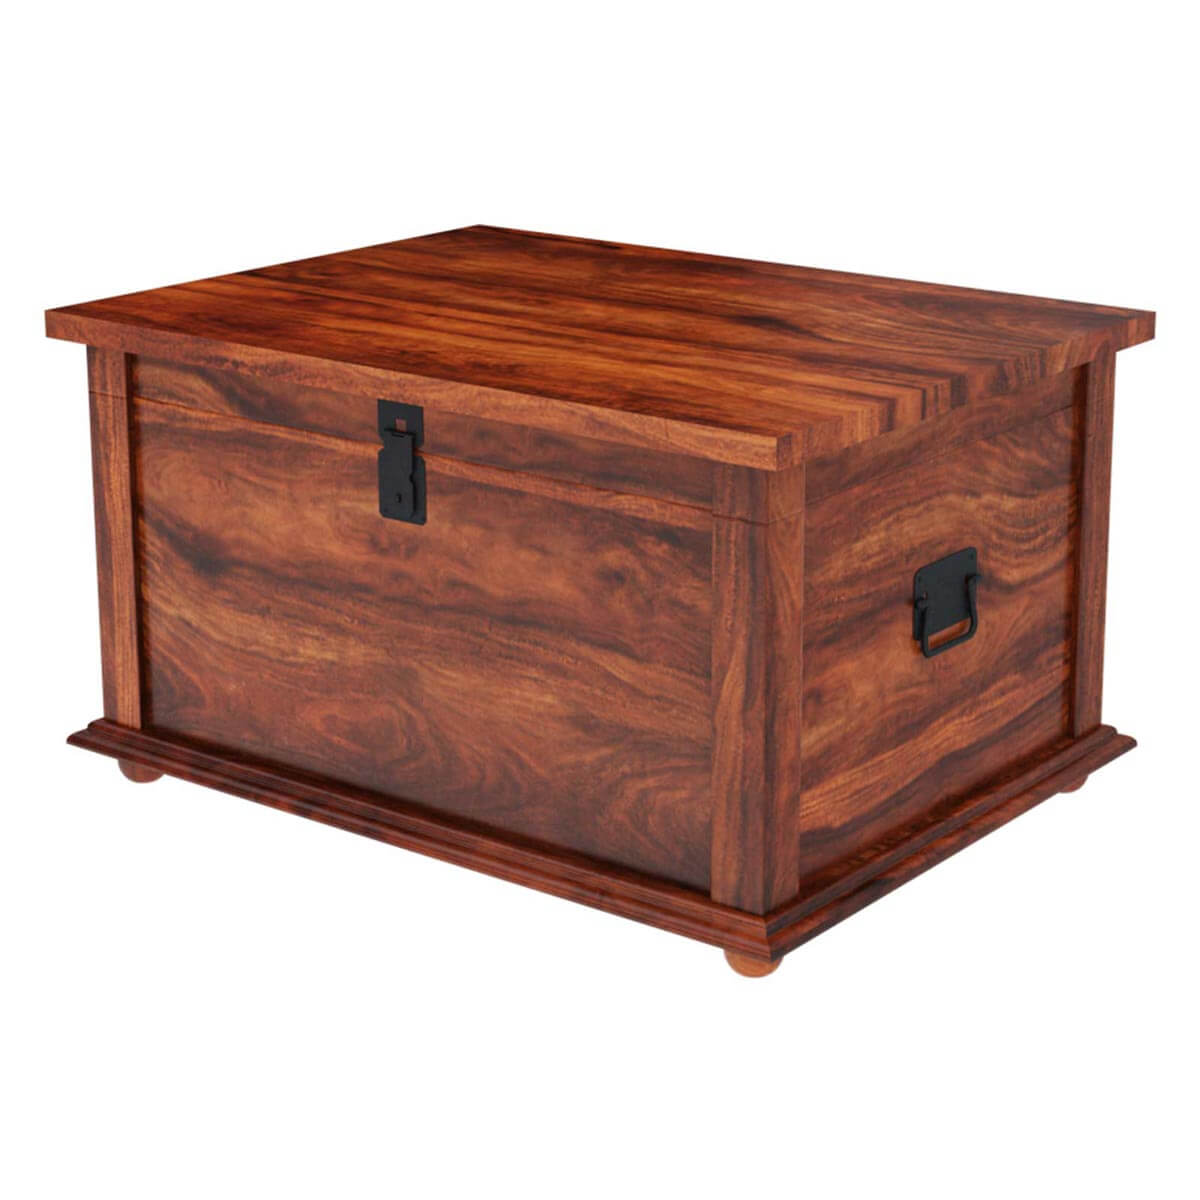 Rustic Primitive Solid Wood Storage Trunk Coffee Table NEW